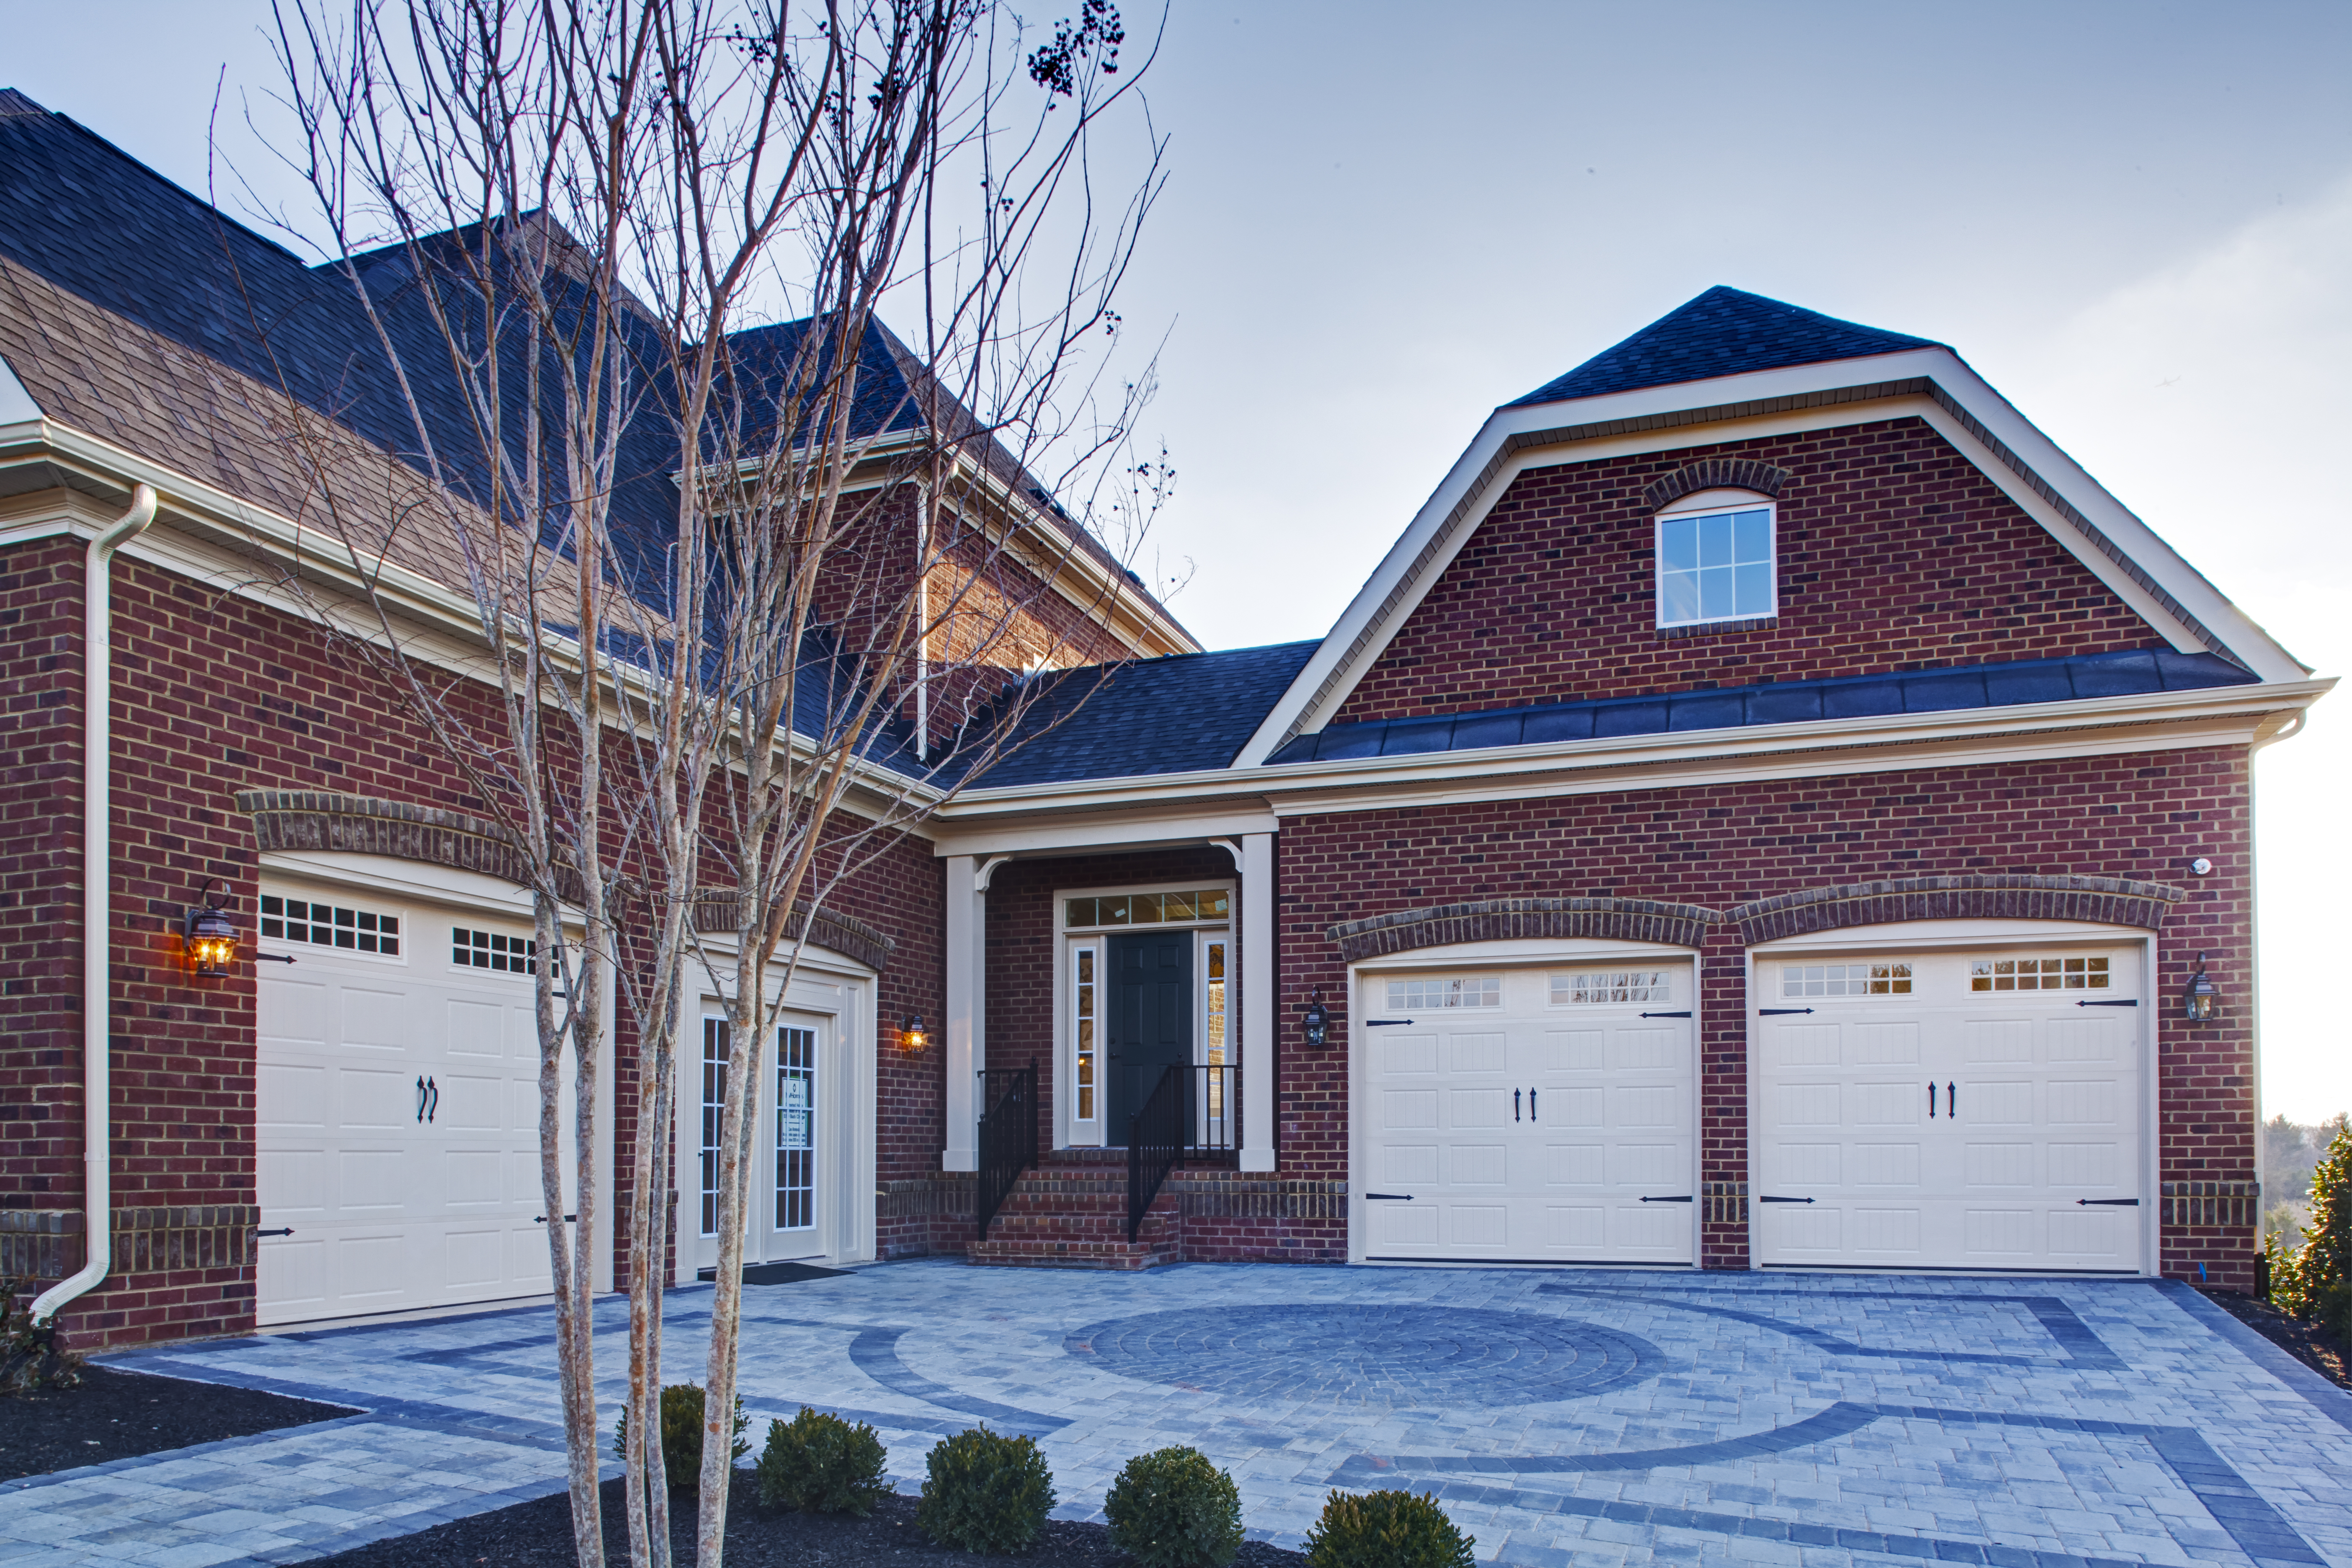 Homes in this community can come with up to a 4 car garage.